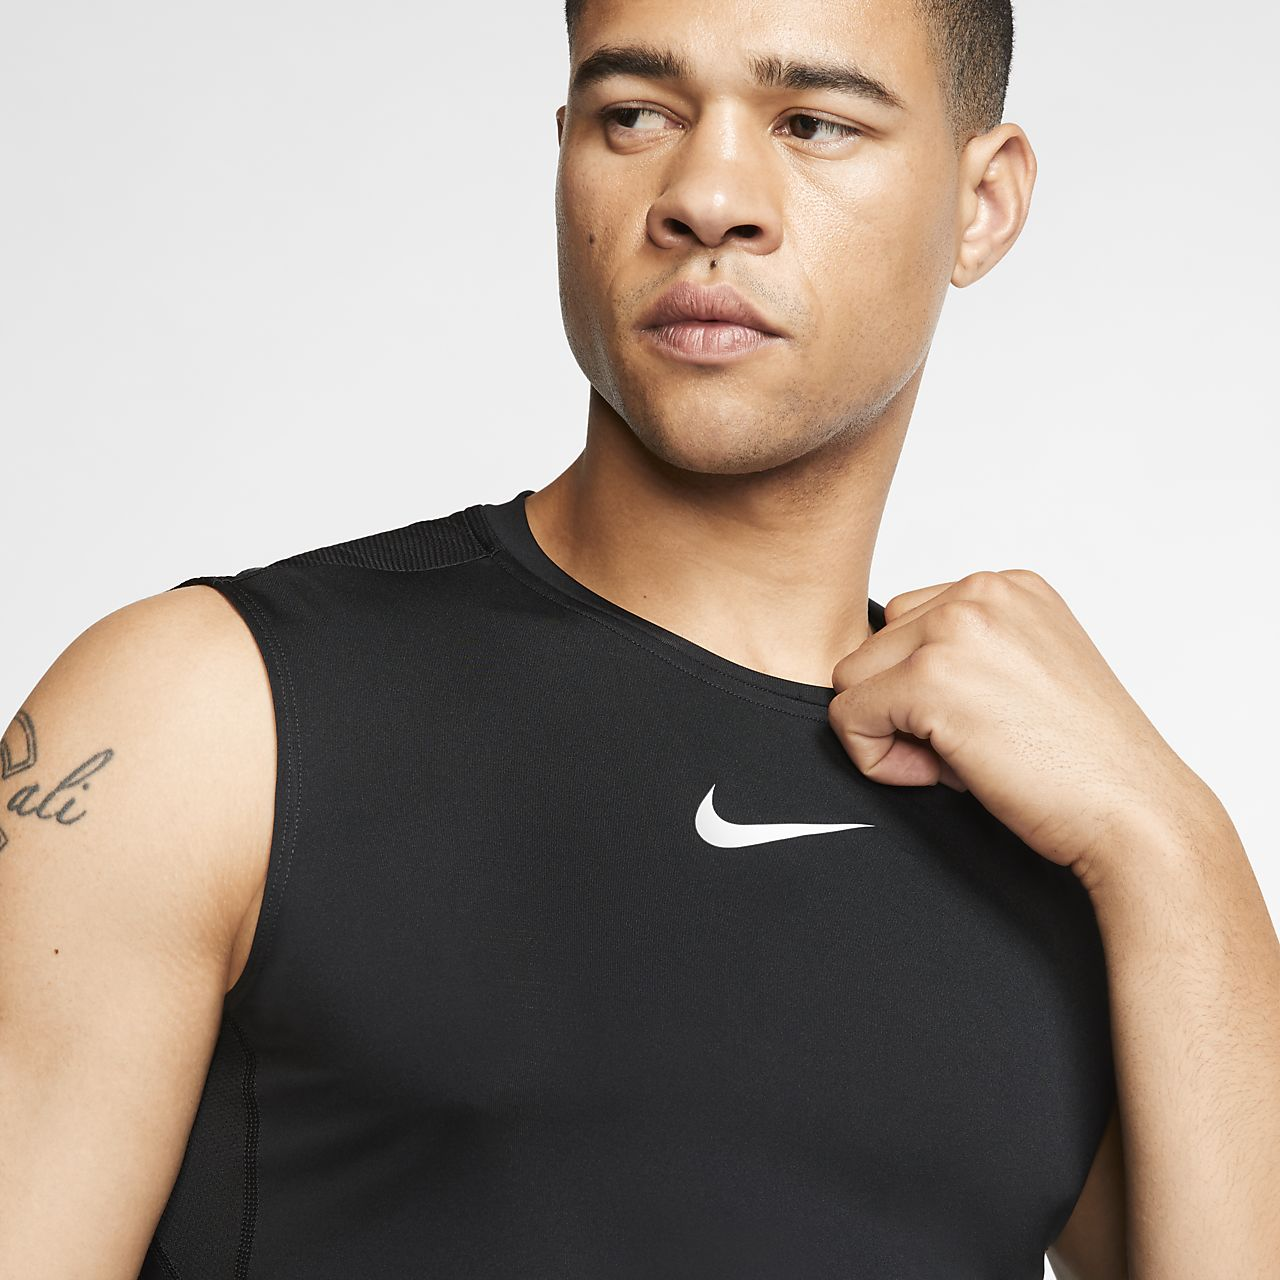 71eabe7630a30 Nike Pro Men s Sleeveless Fitted Top. Nike.com